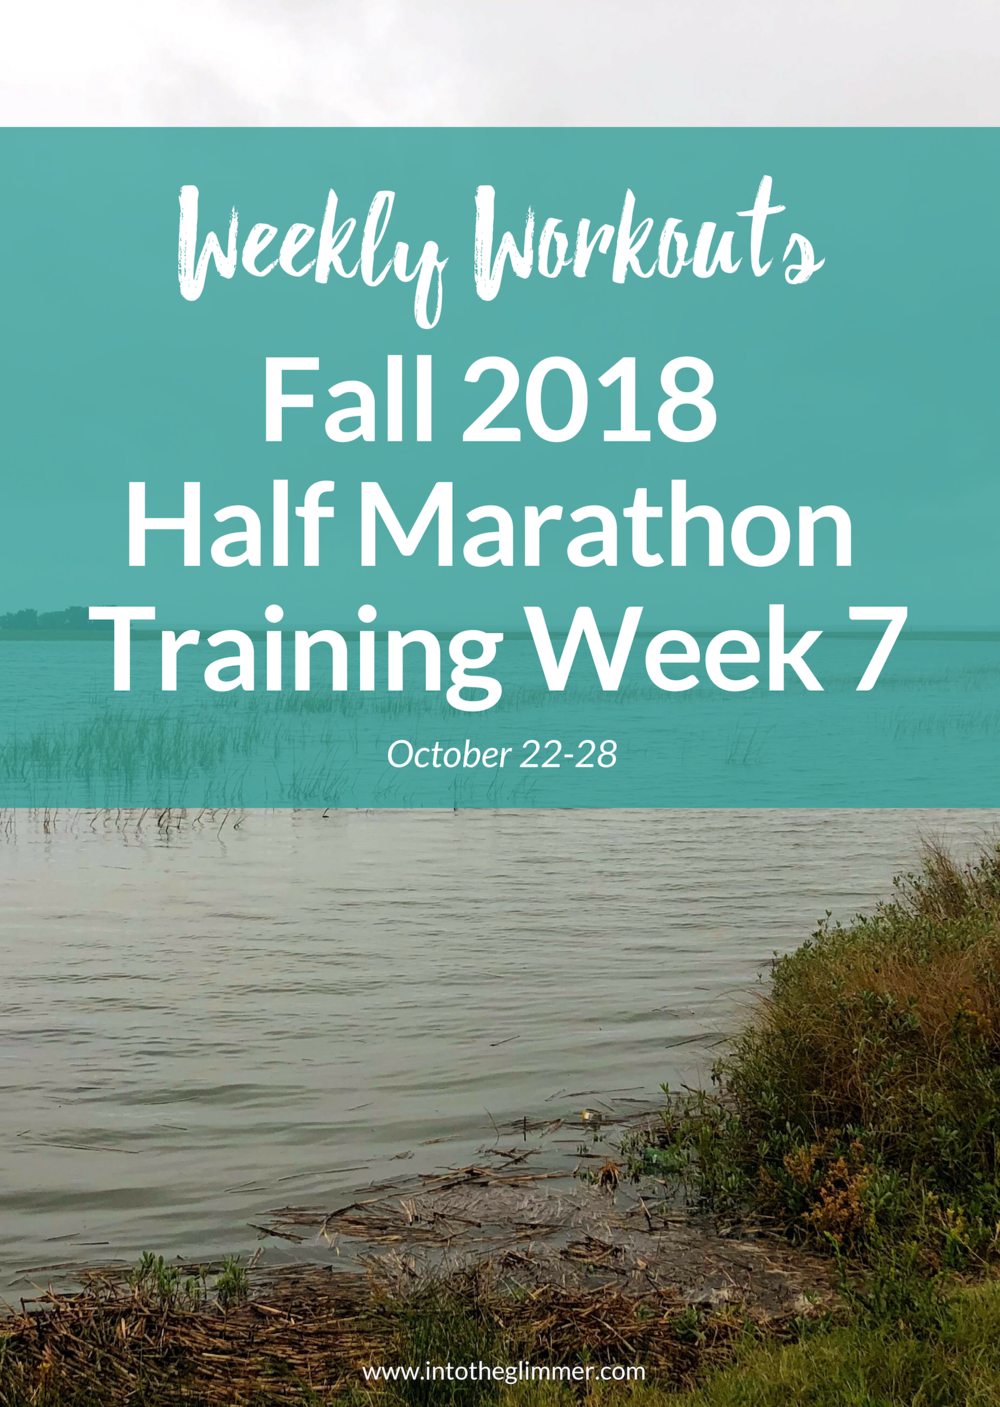 Weekly Workouts: Fall 2018 Half Marathon Training Week 7